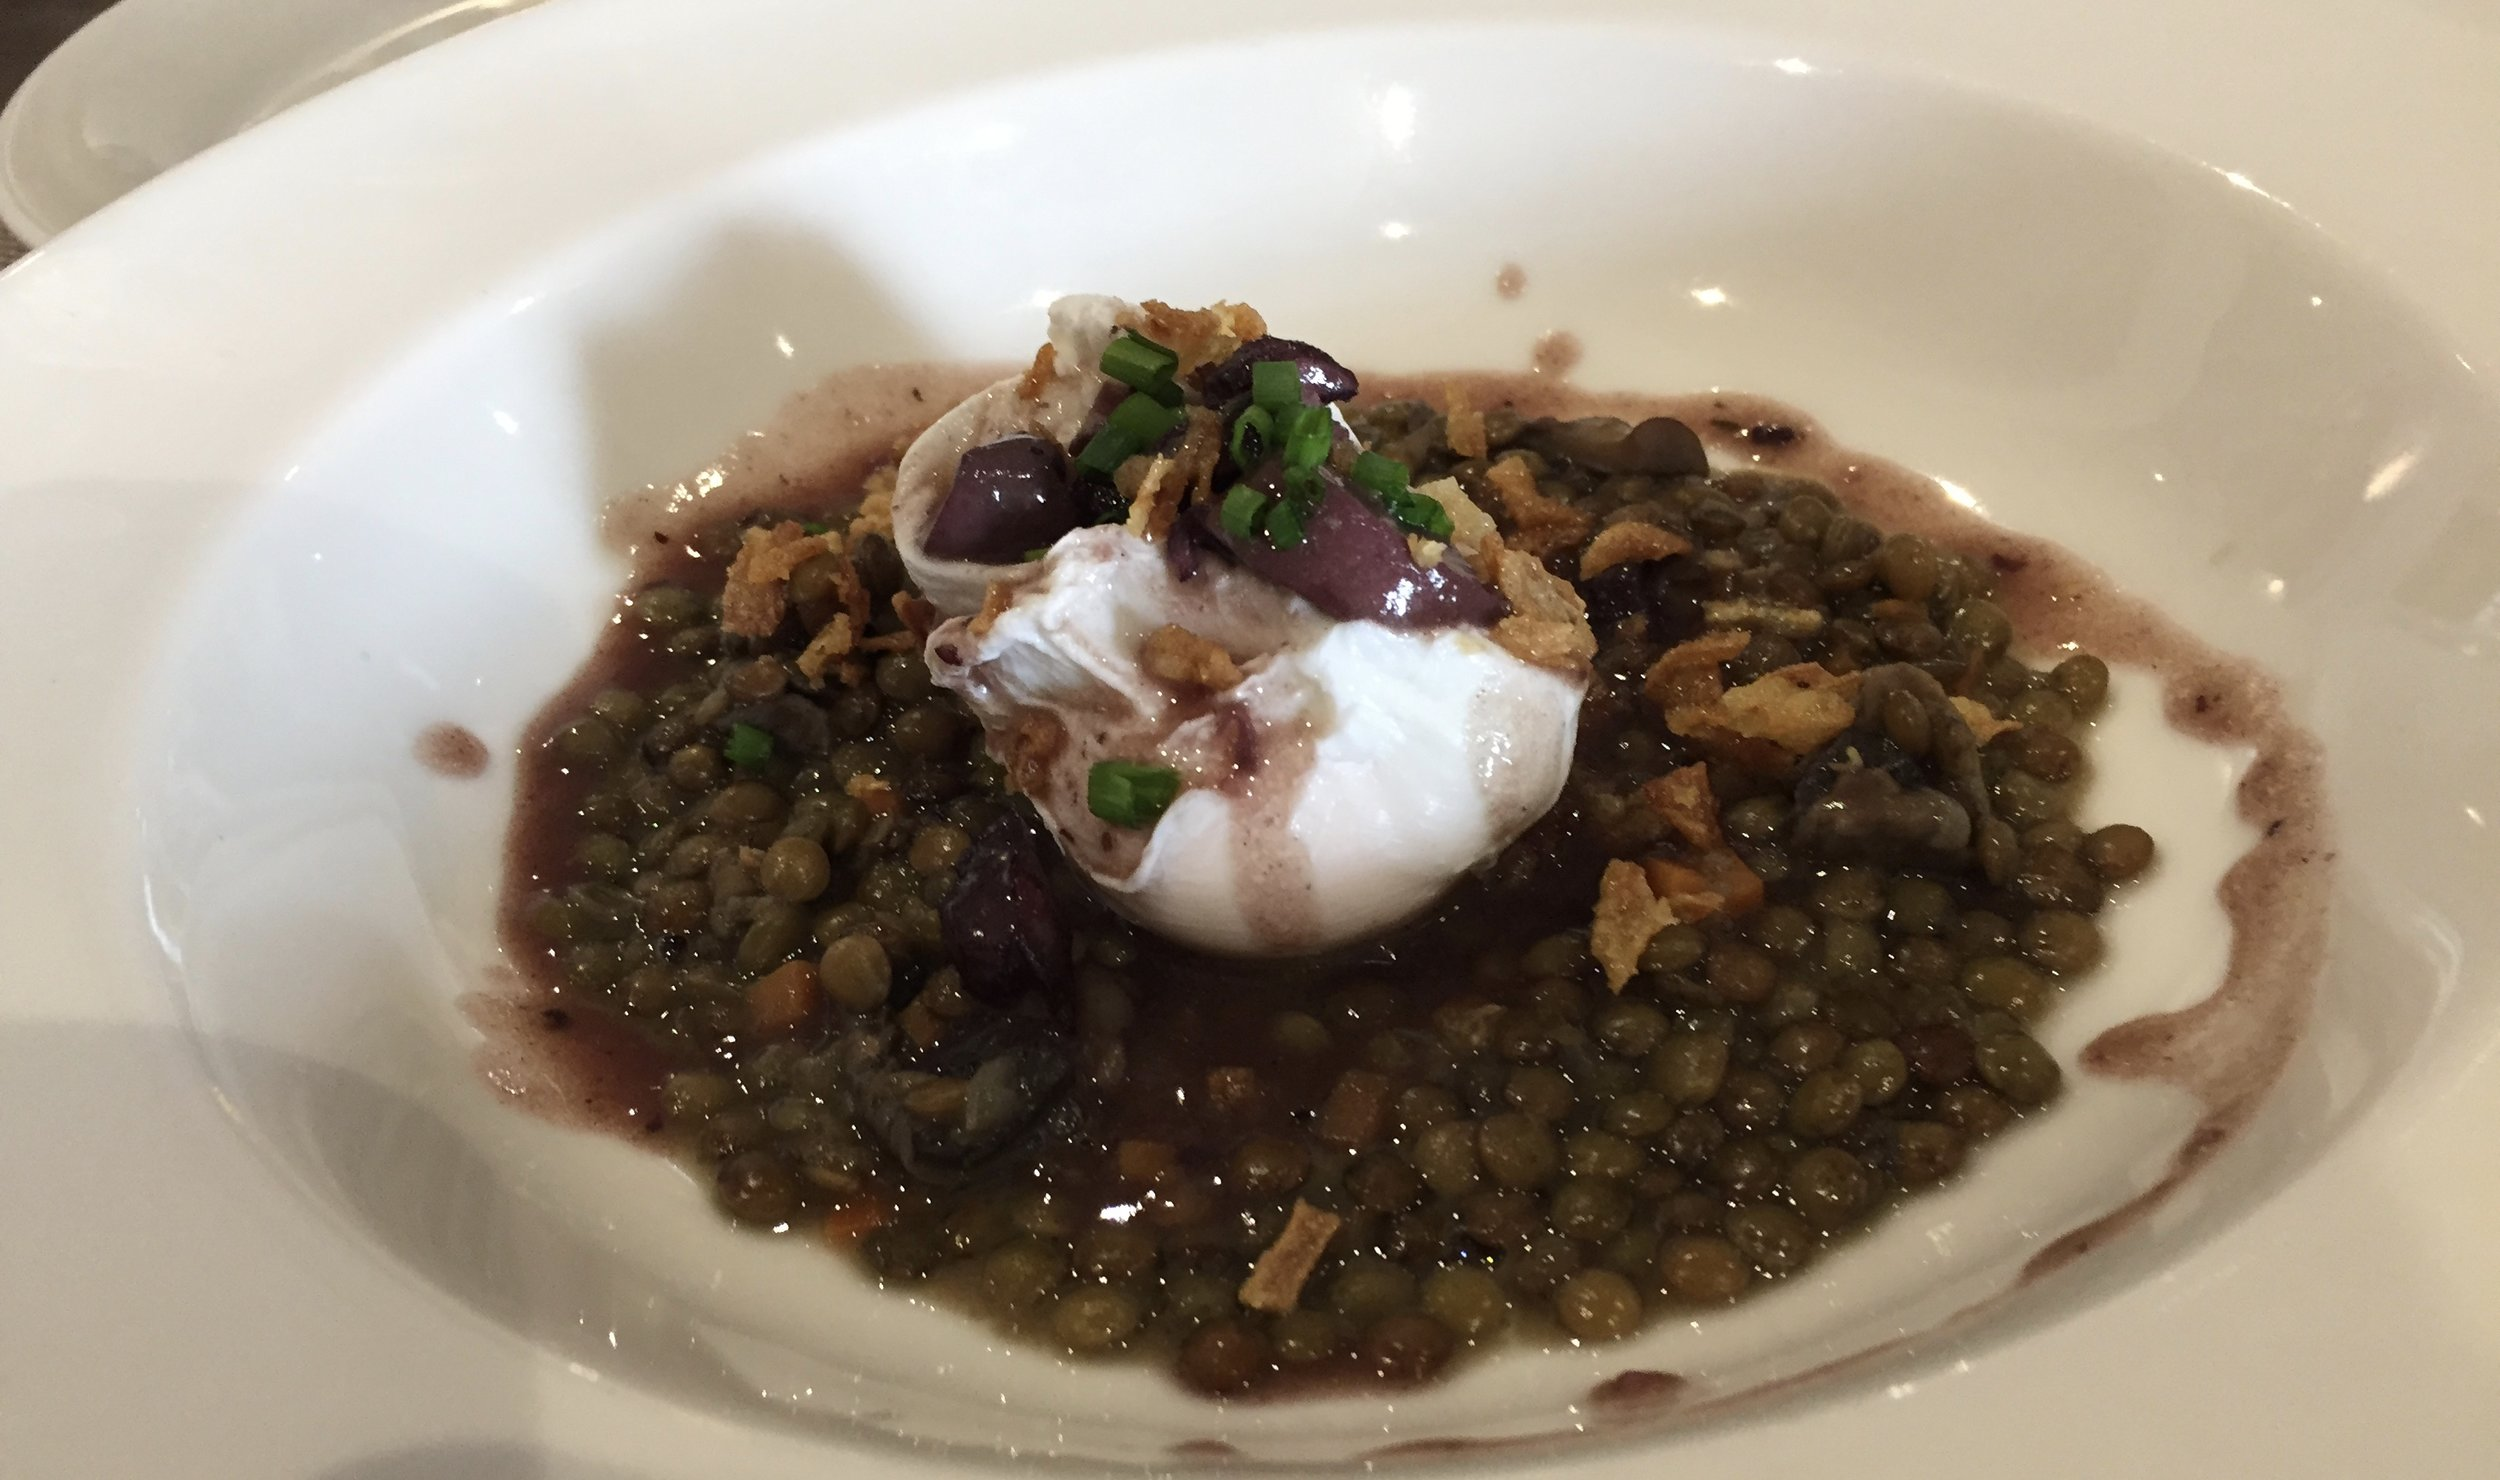 Lentils with mushrooms and poached egg